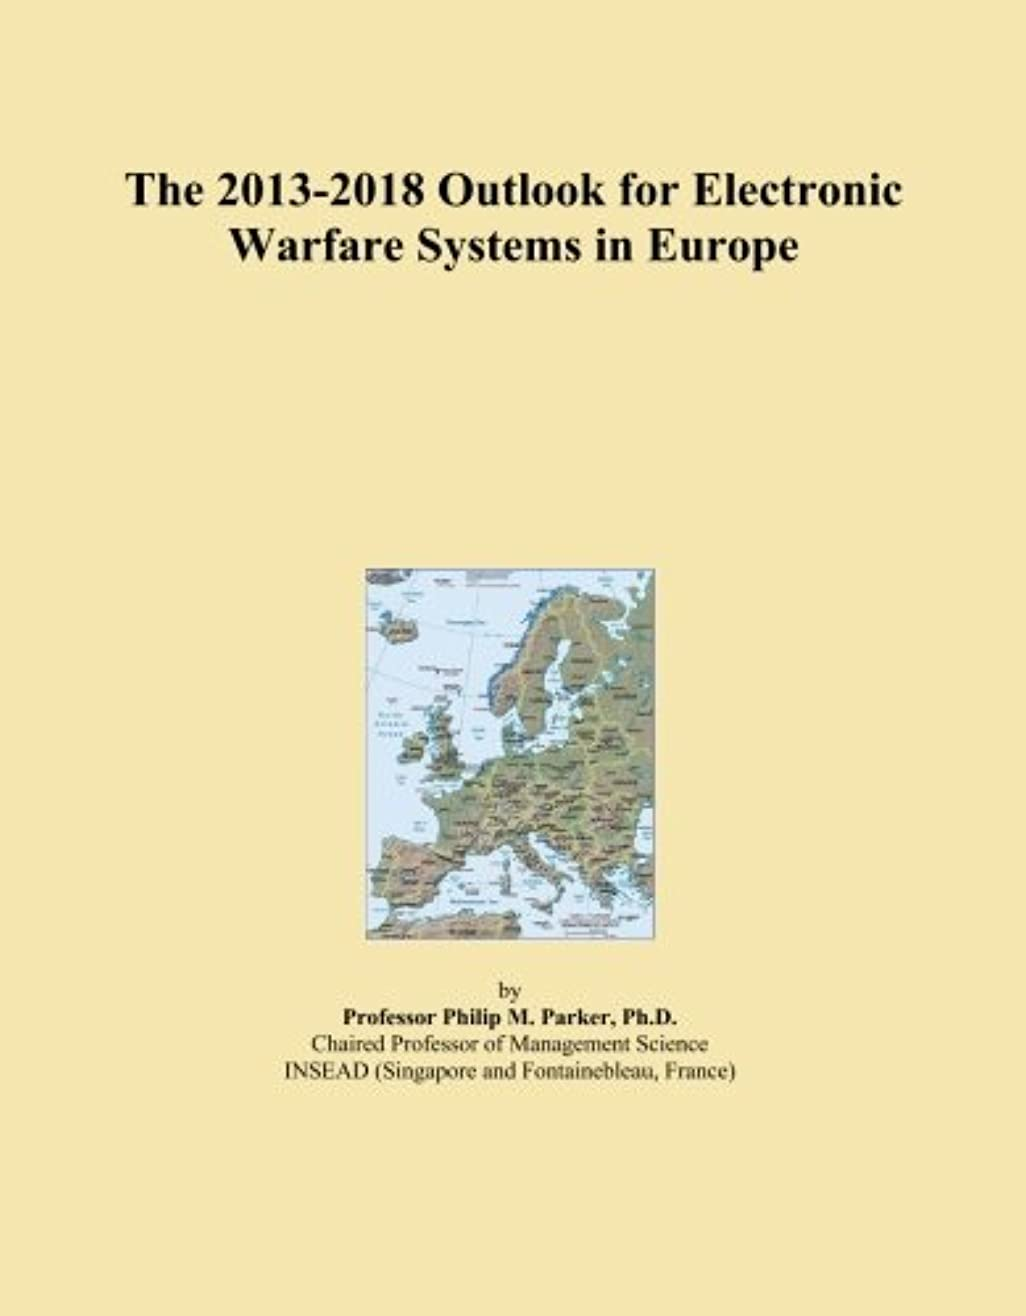 大学院ベジタリアン征服するThe 2013-2018 Outlook for Electronic Warfare Systems in Europe